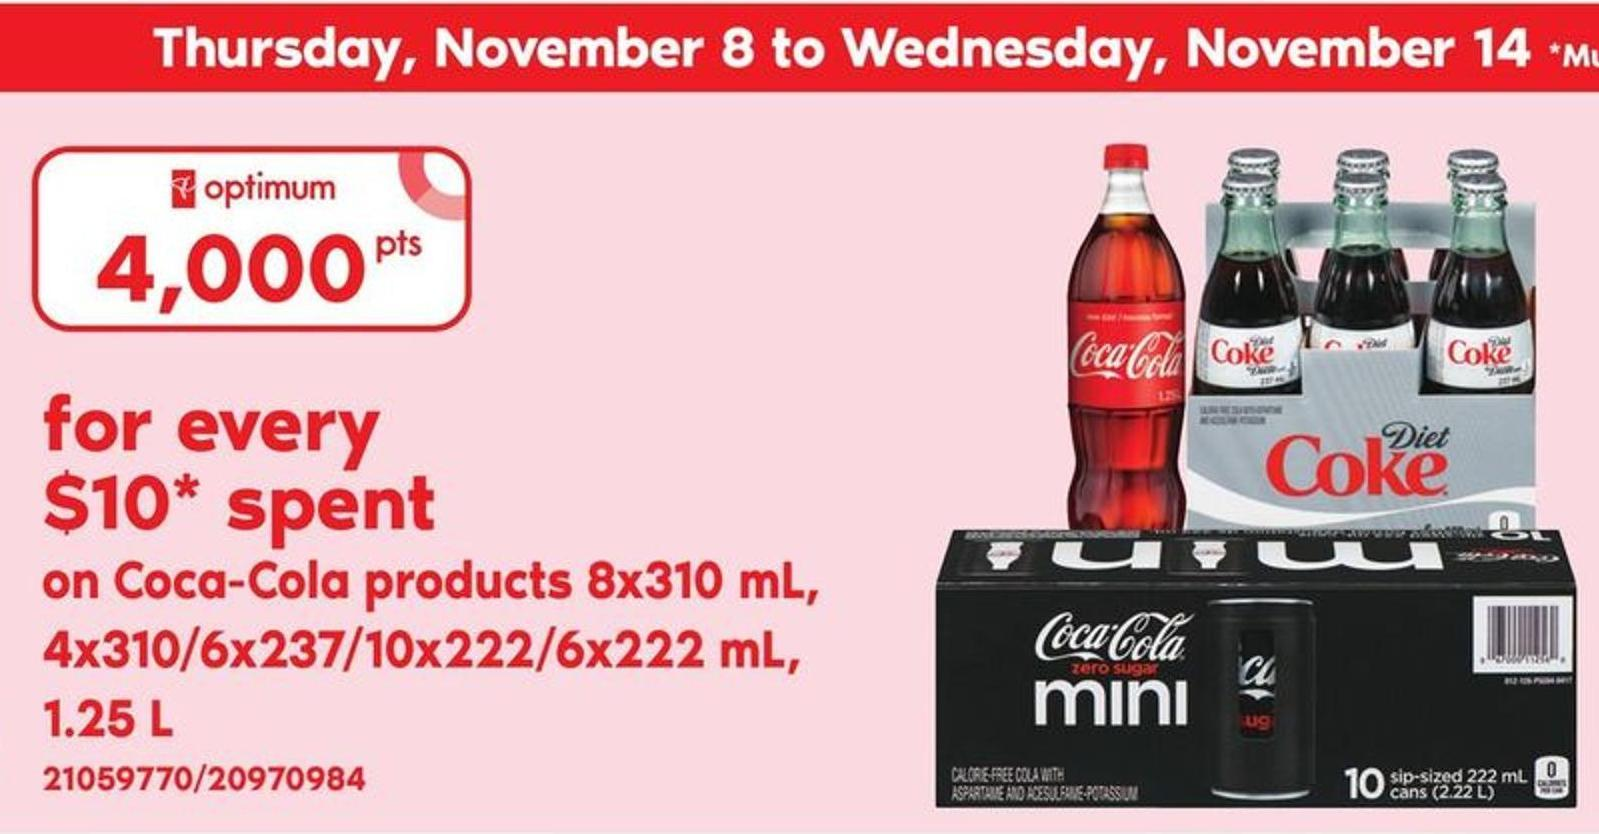 Coca-cola Products 8x310 mL - 4x310/6x237/10x222/6x222 mL - 1.25 L